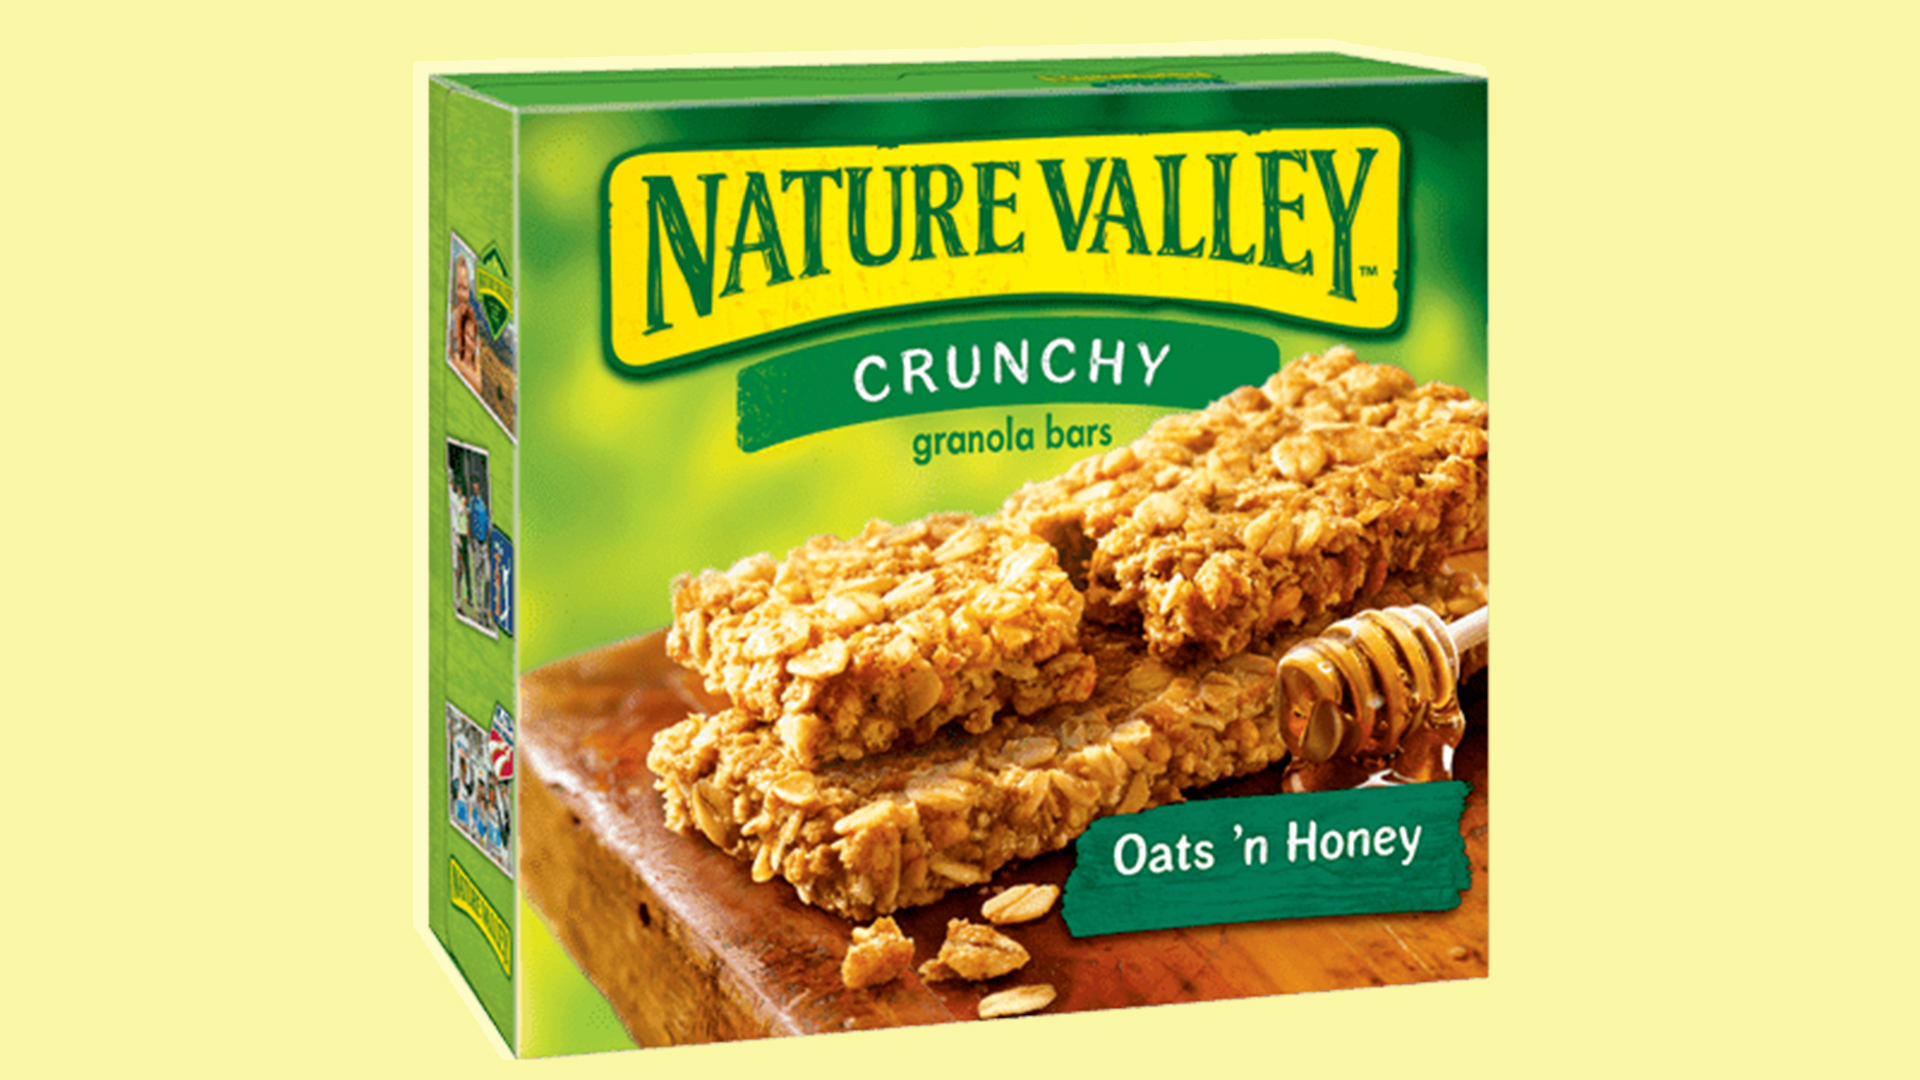 Heres Why Nature Valley Granola Bars Are So Crumbly And How To Eat